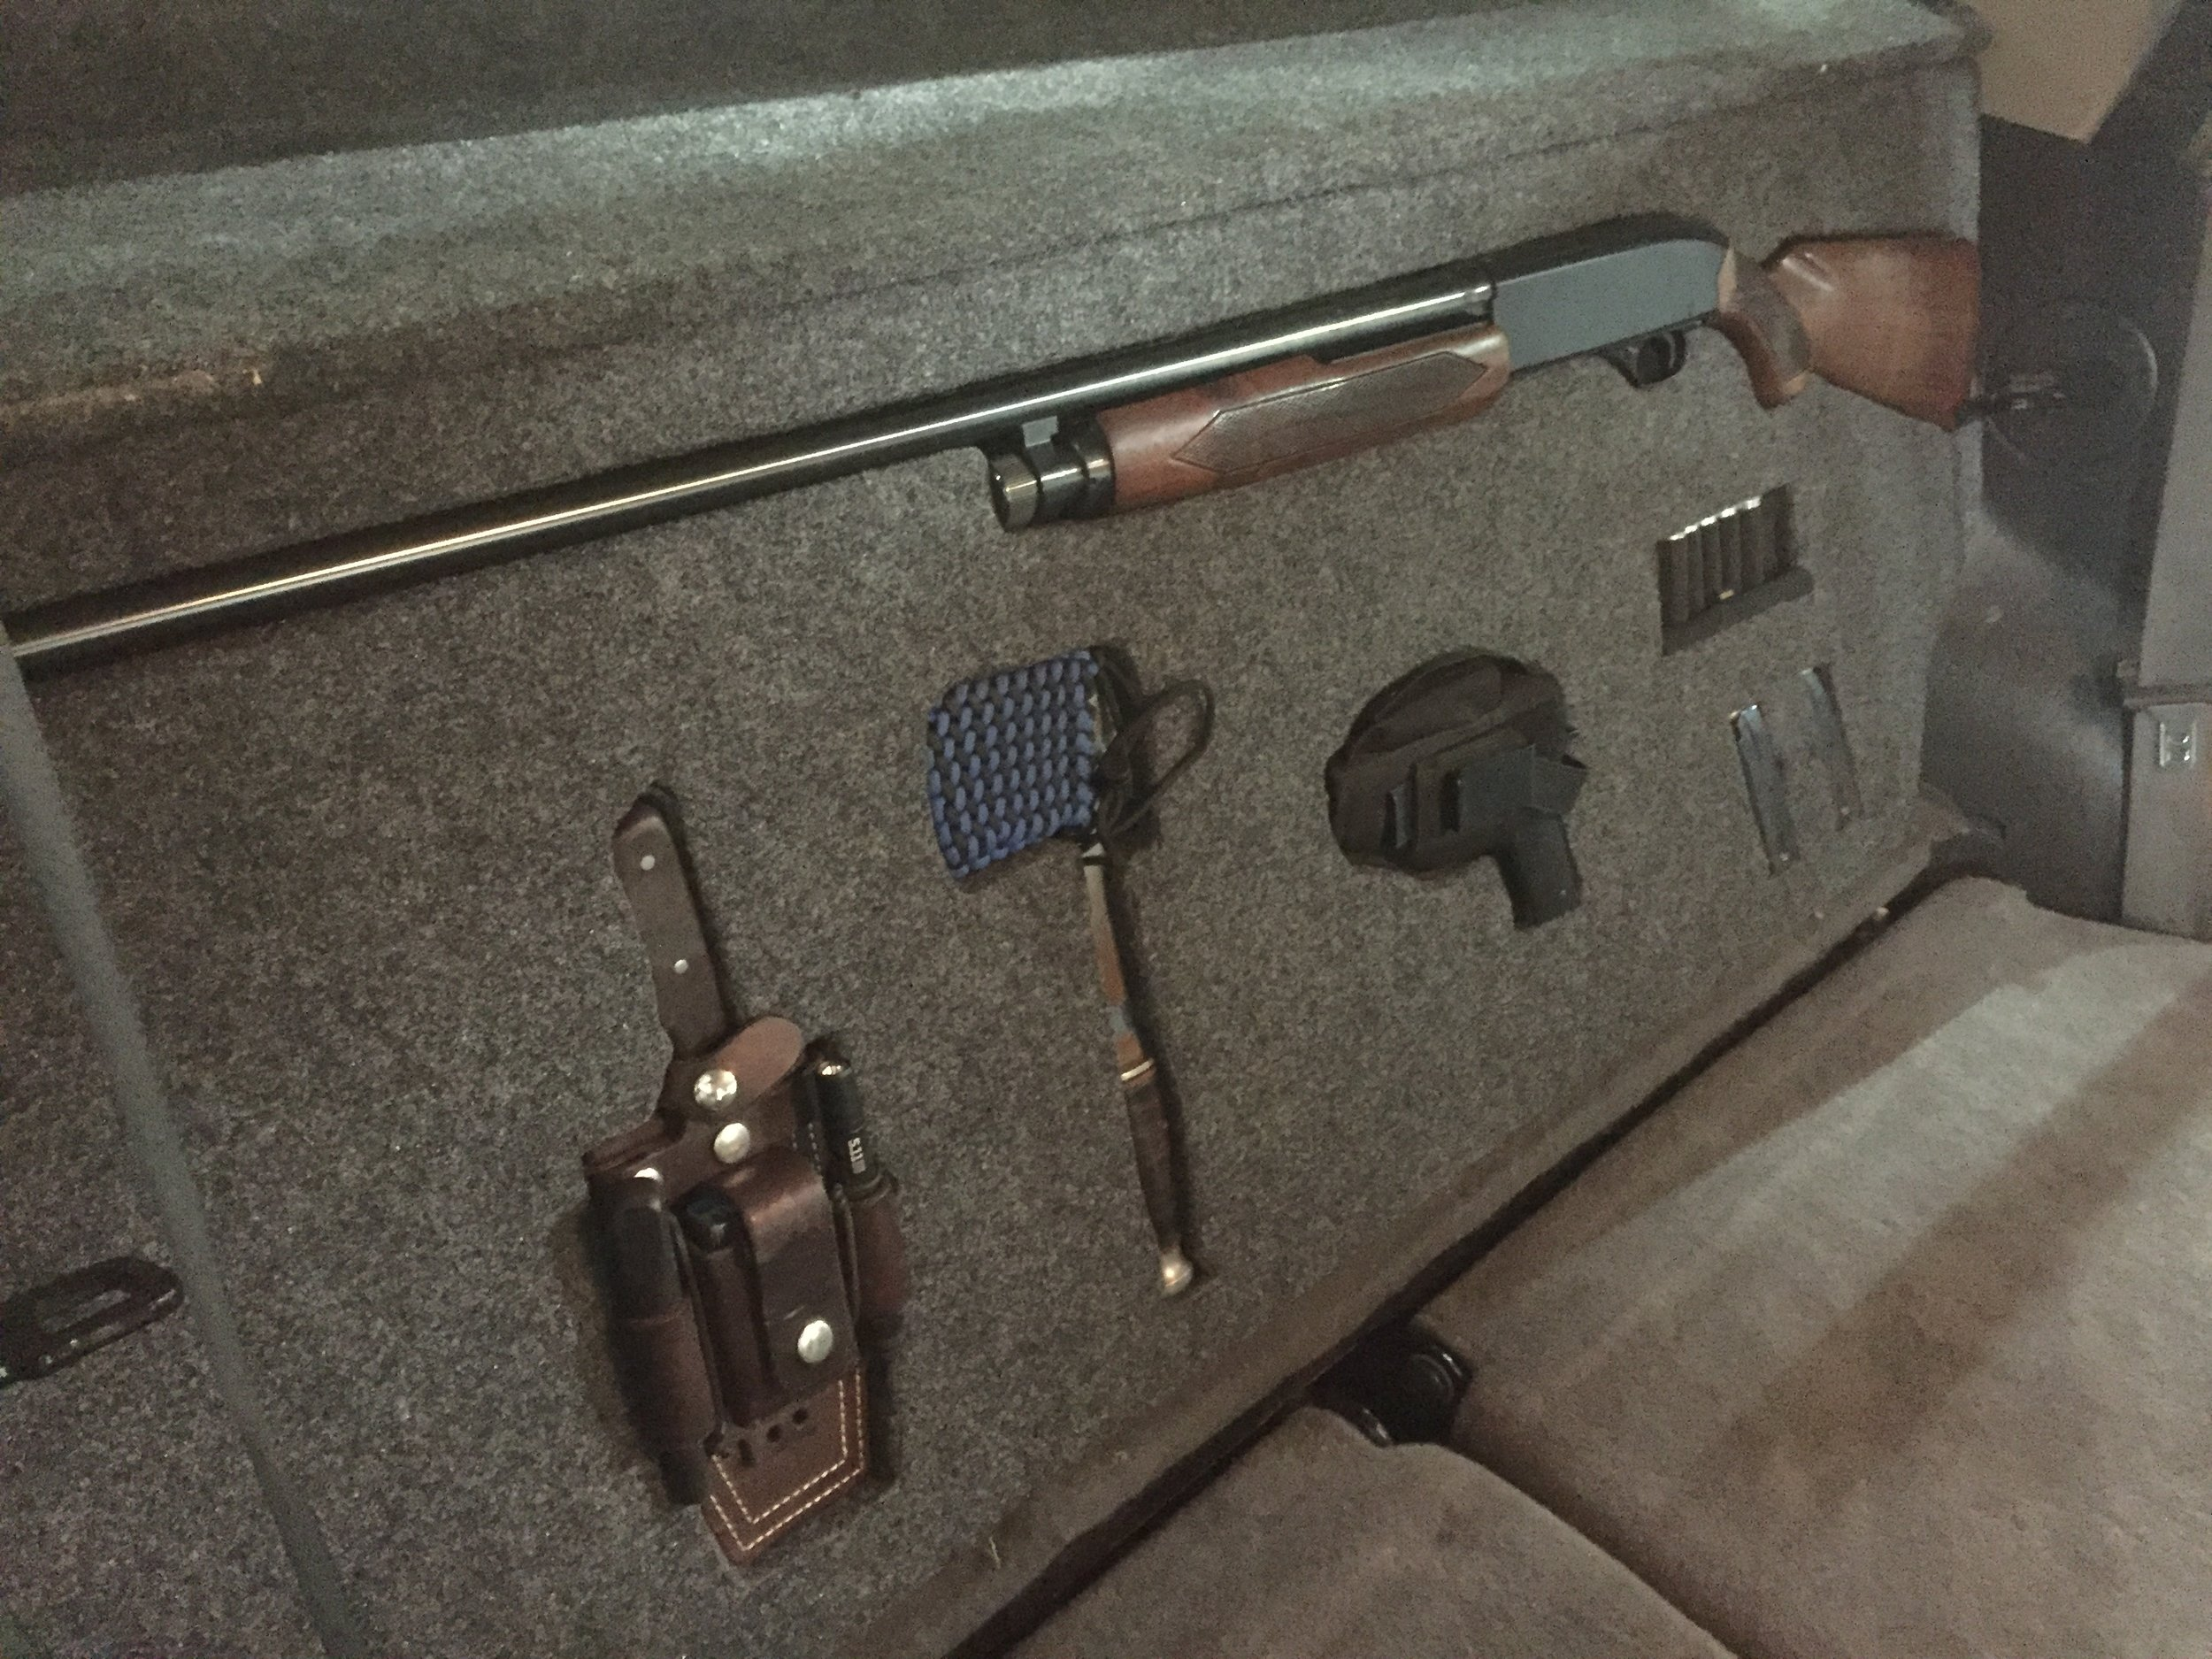 Building a Concealed Vehicle Storage System!